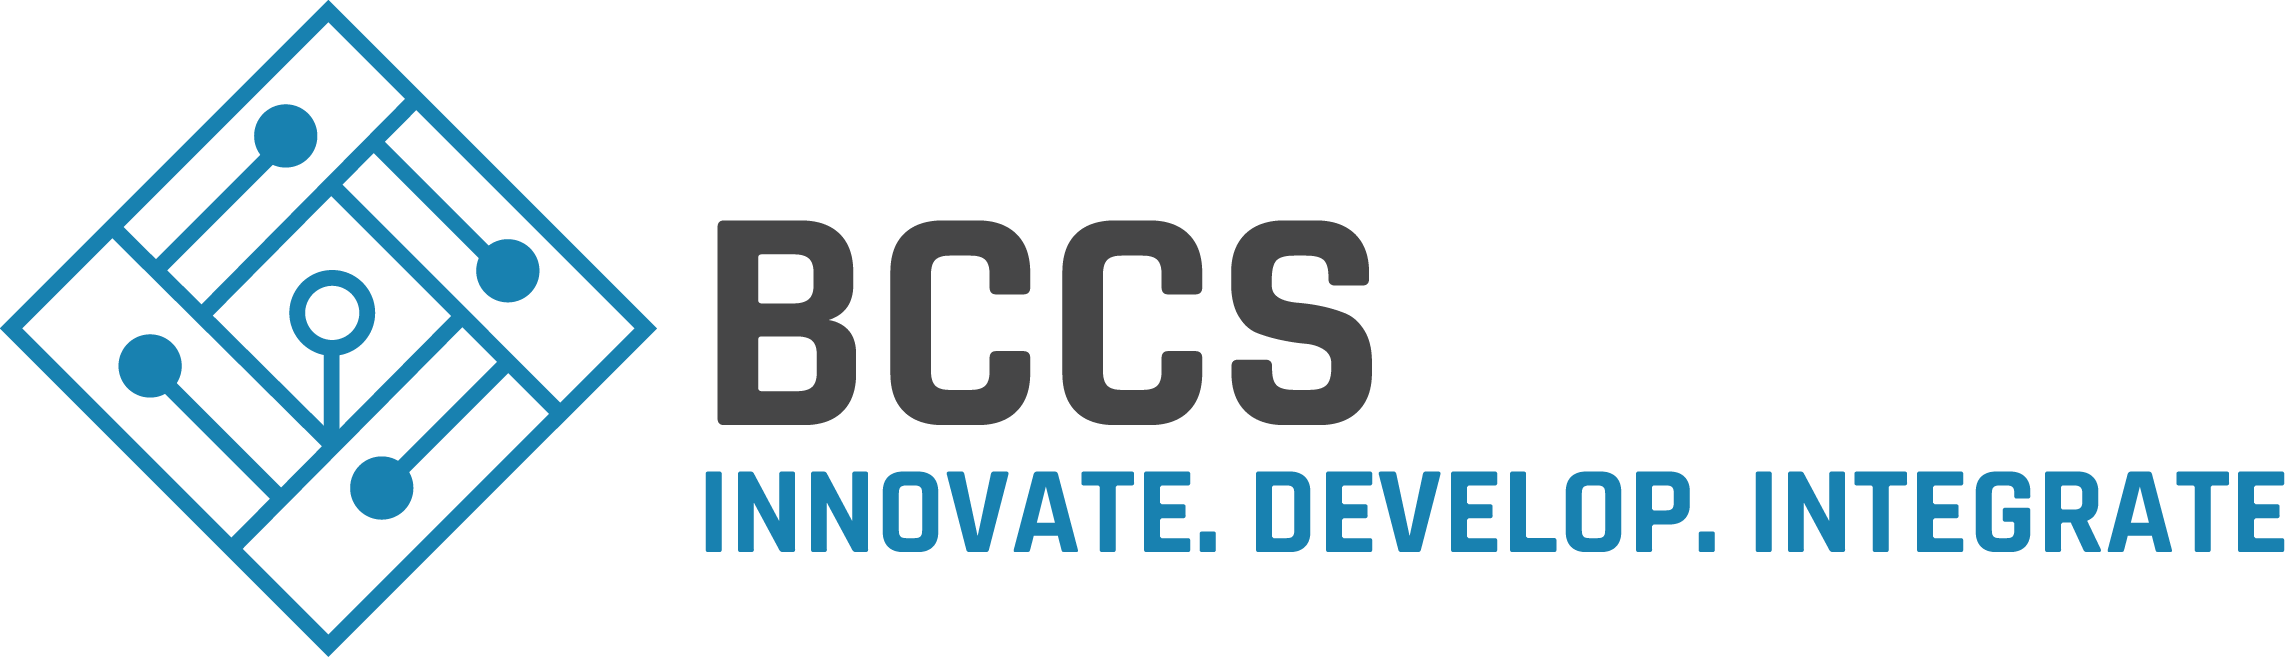 BCCS Cluster: Innovate. Develop. Integrate